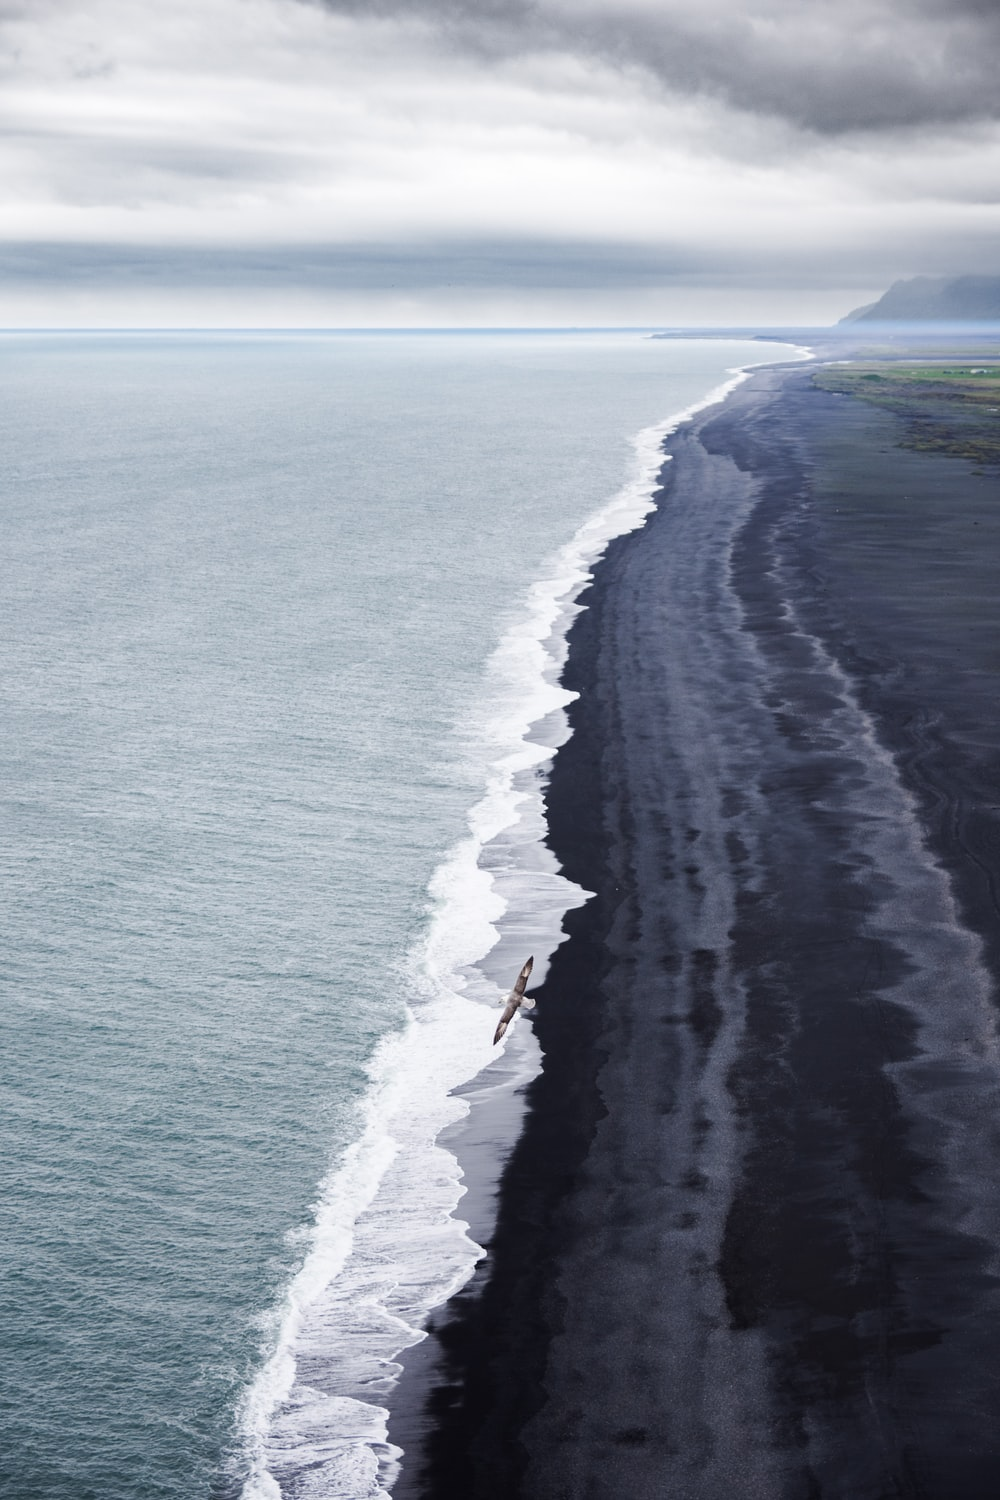 Iceland Black Beach Pictures Download Free Images On Unsplash